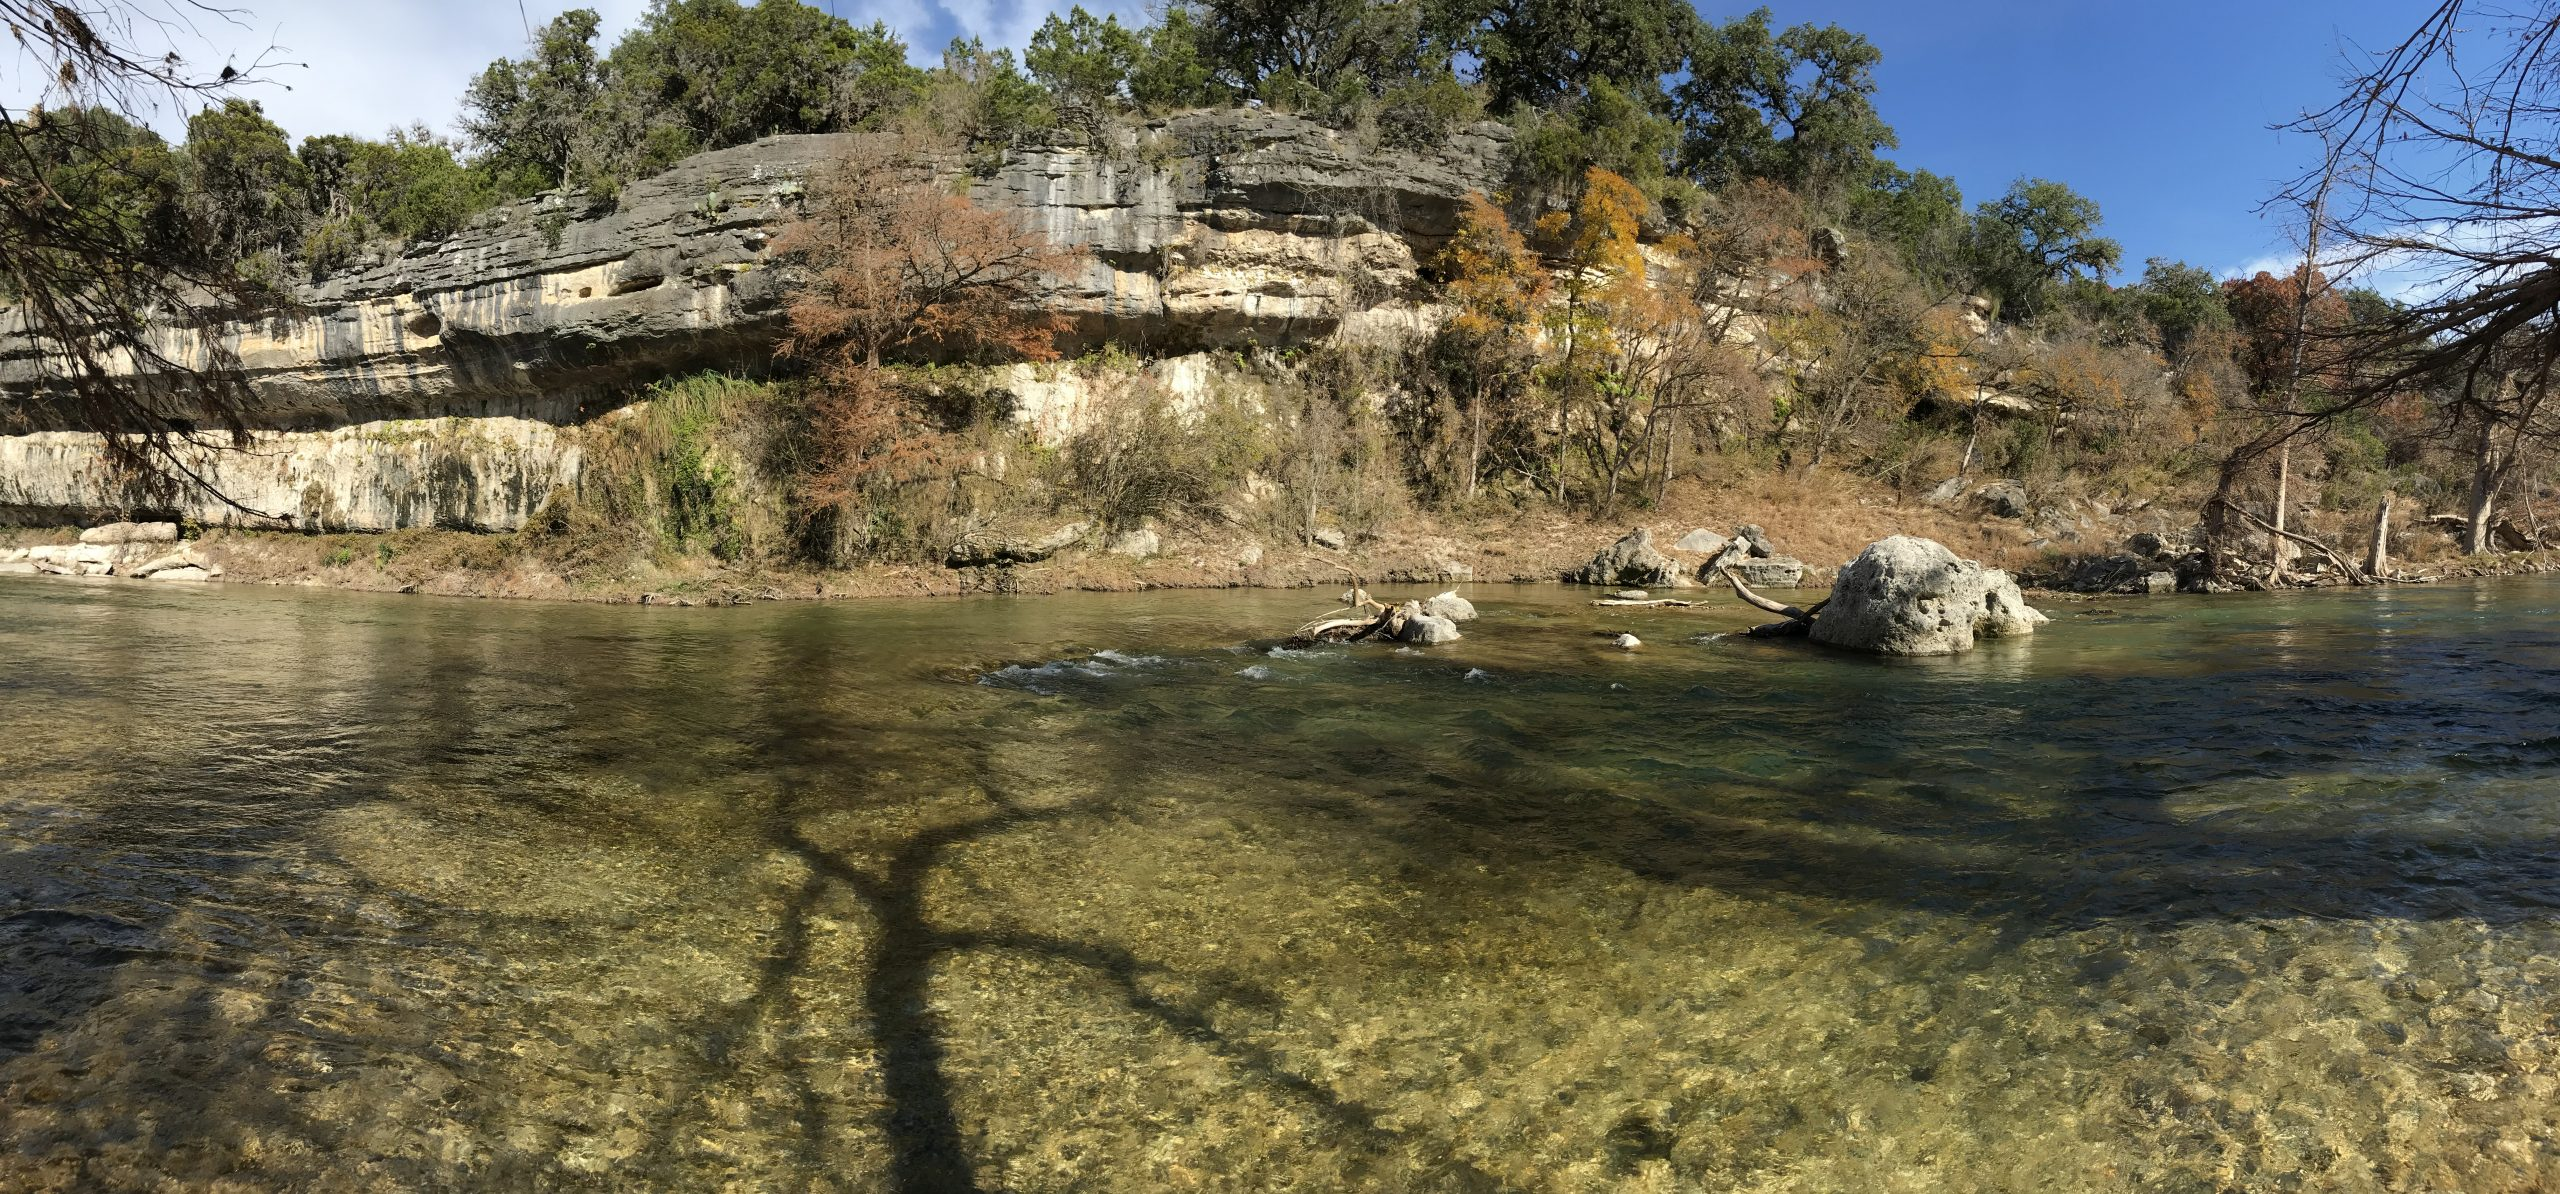 The clear water of the Guadalupe River runs next to a colorful sandstone cliff in Guadalupe River State Park